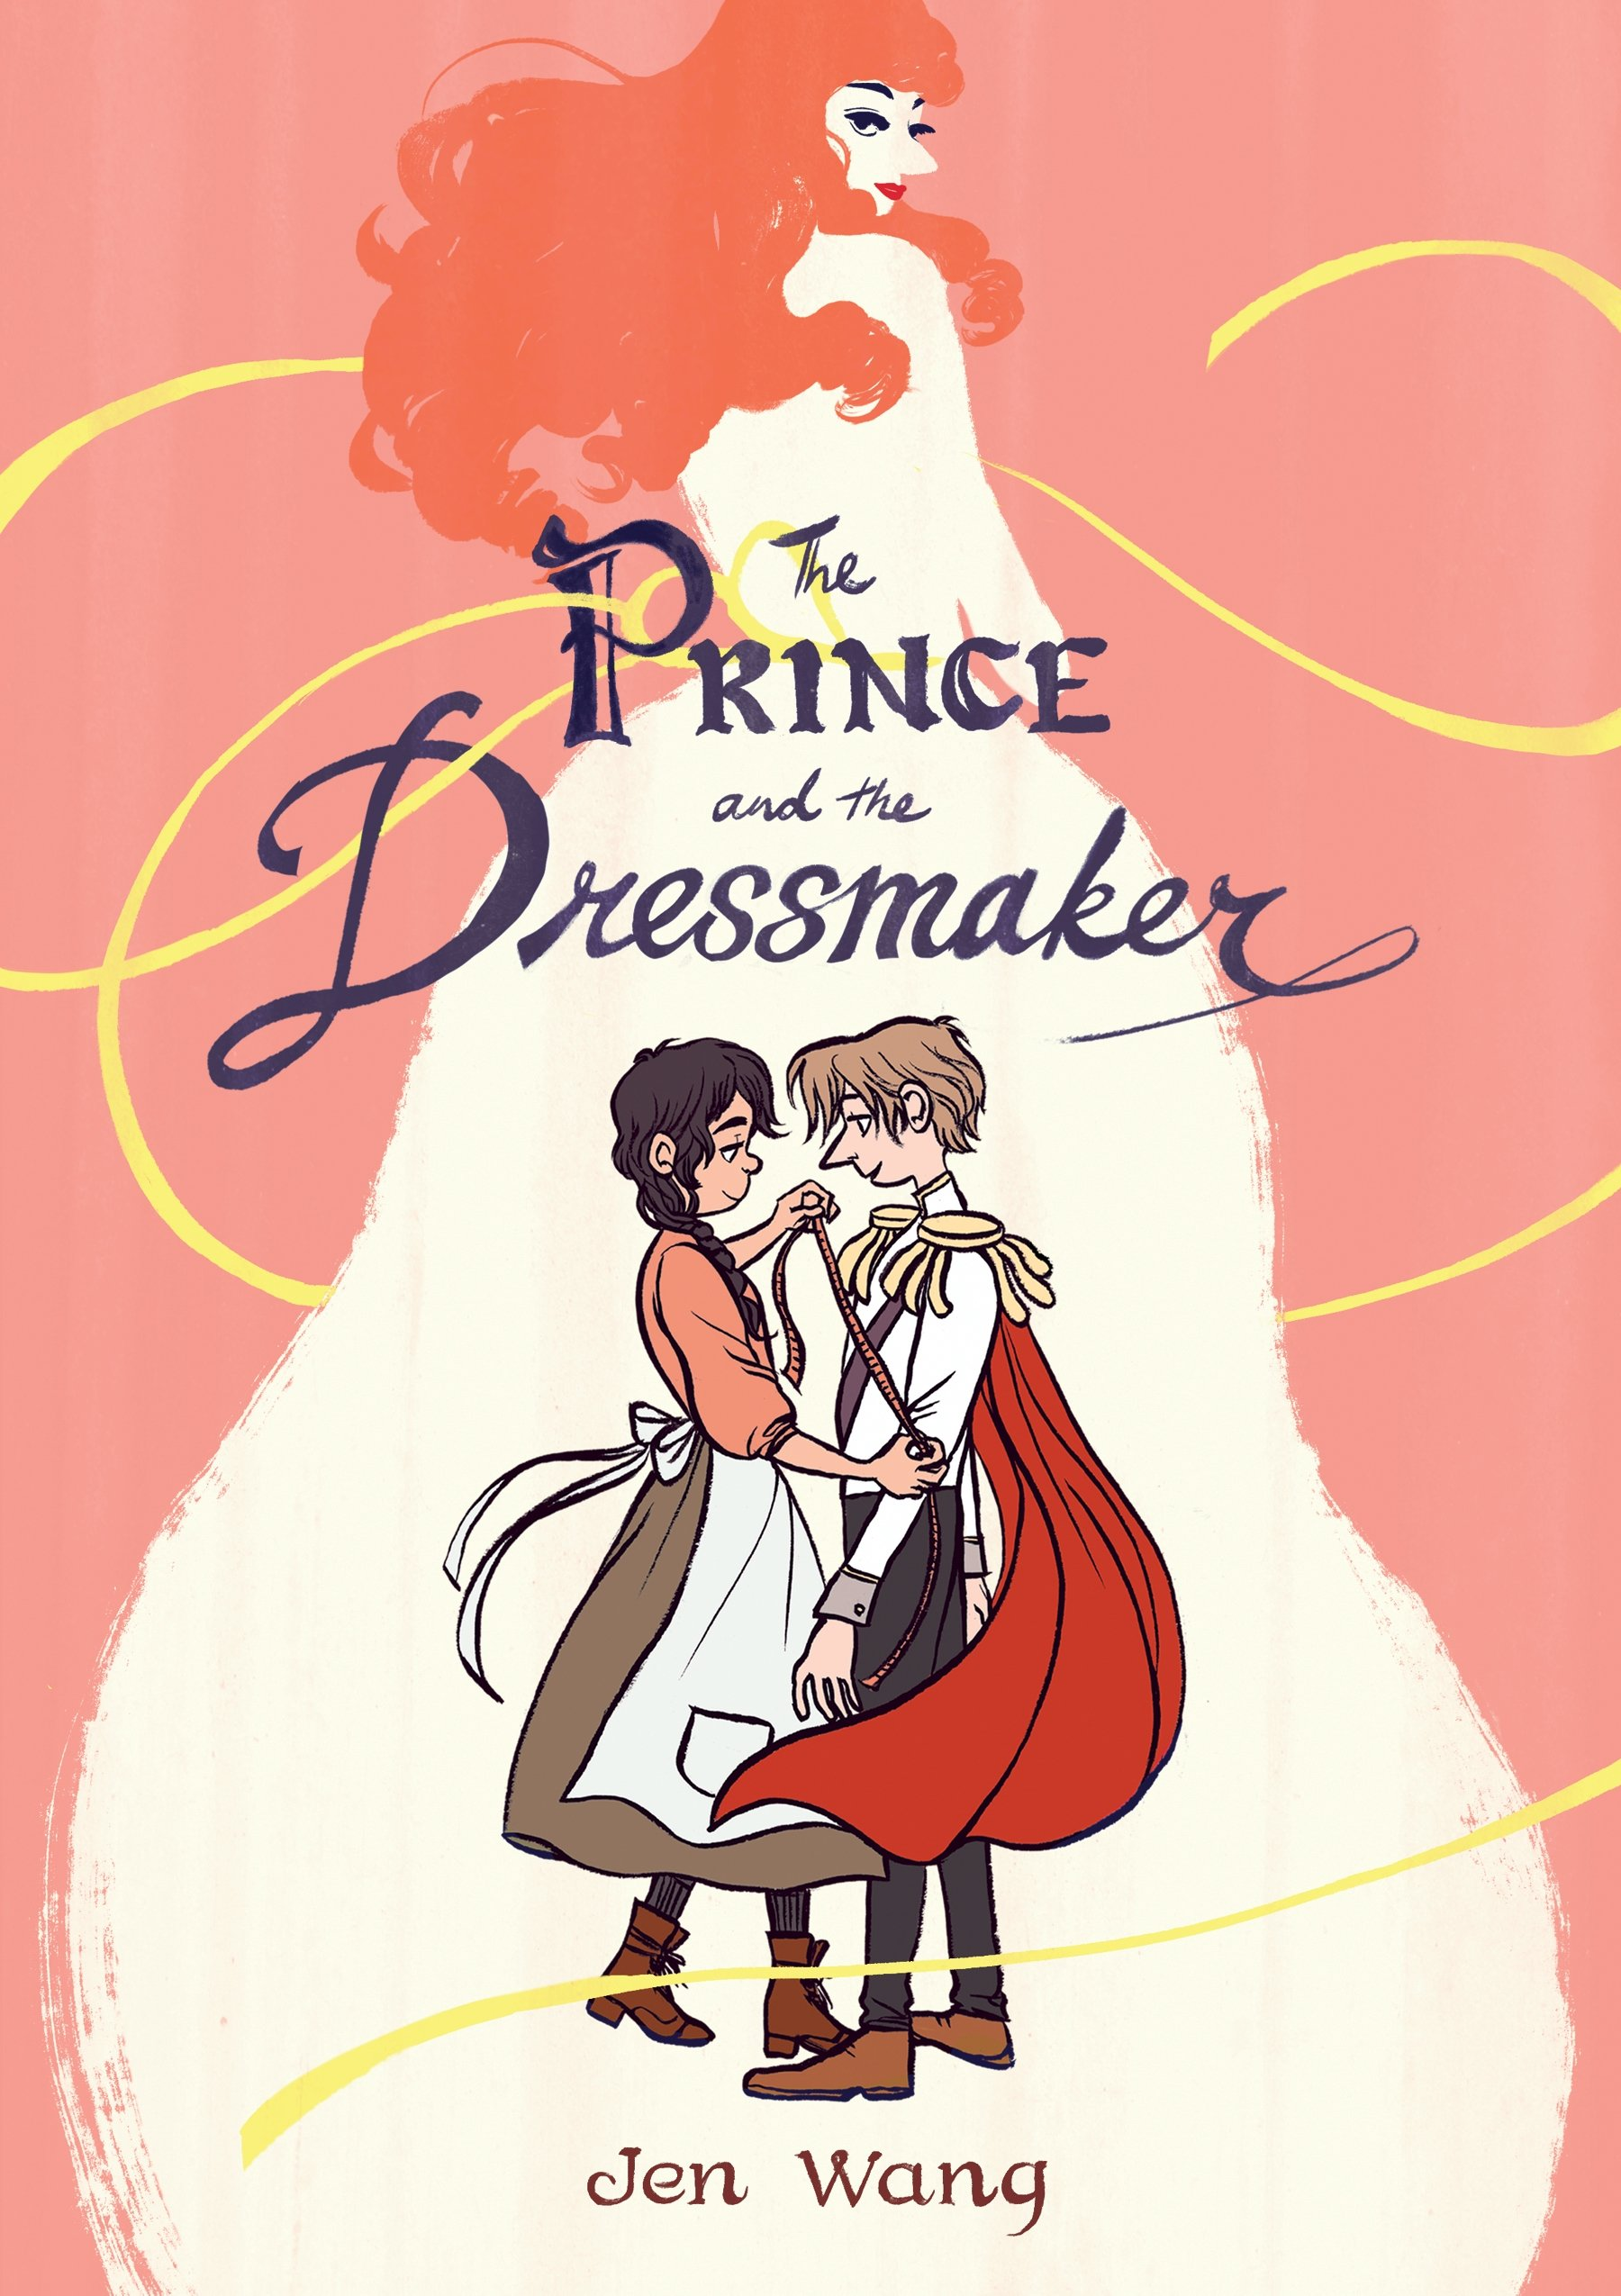 Image result for the prince and the dressmaker jen wang""